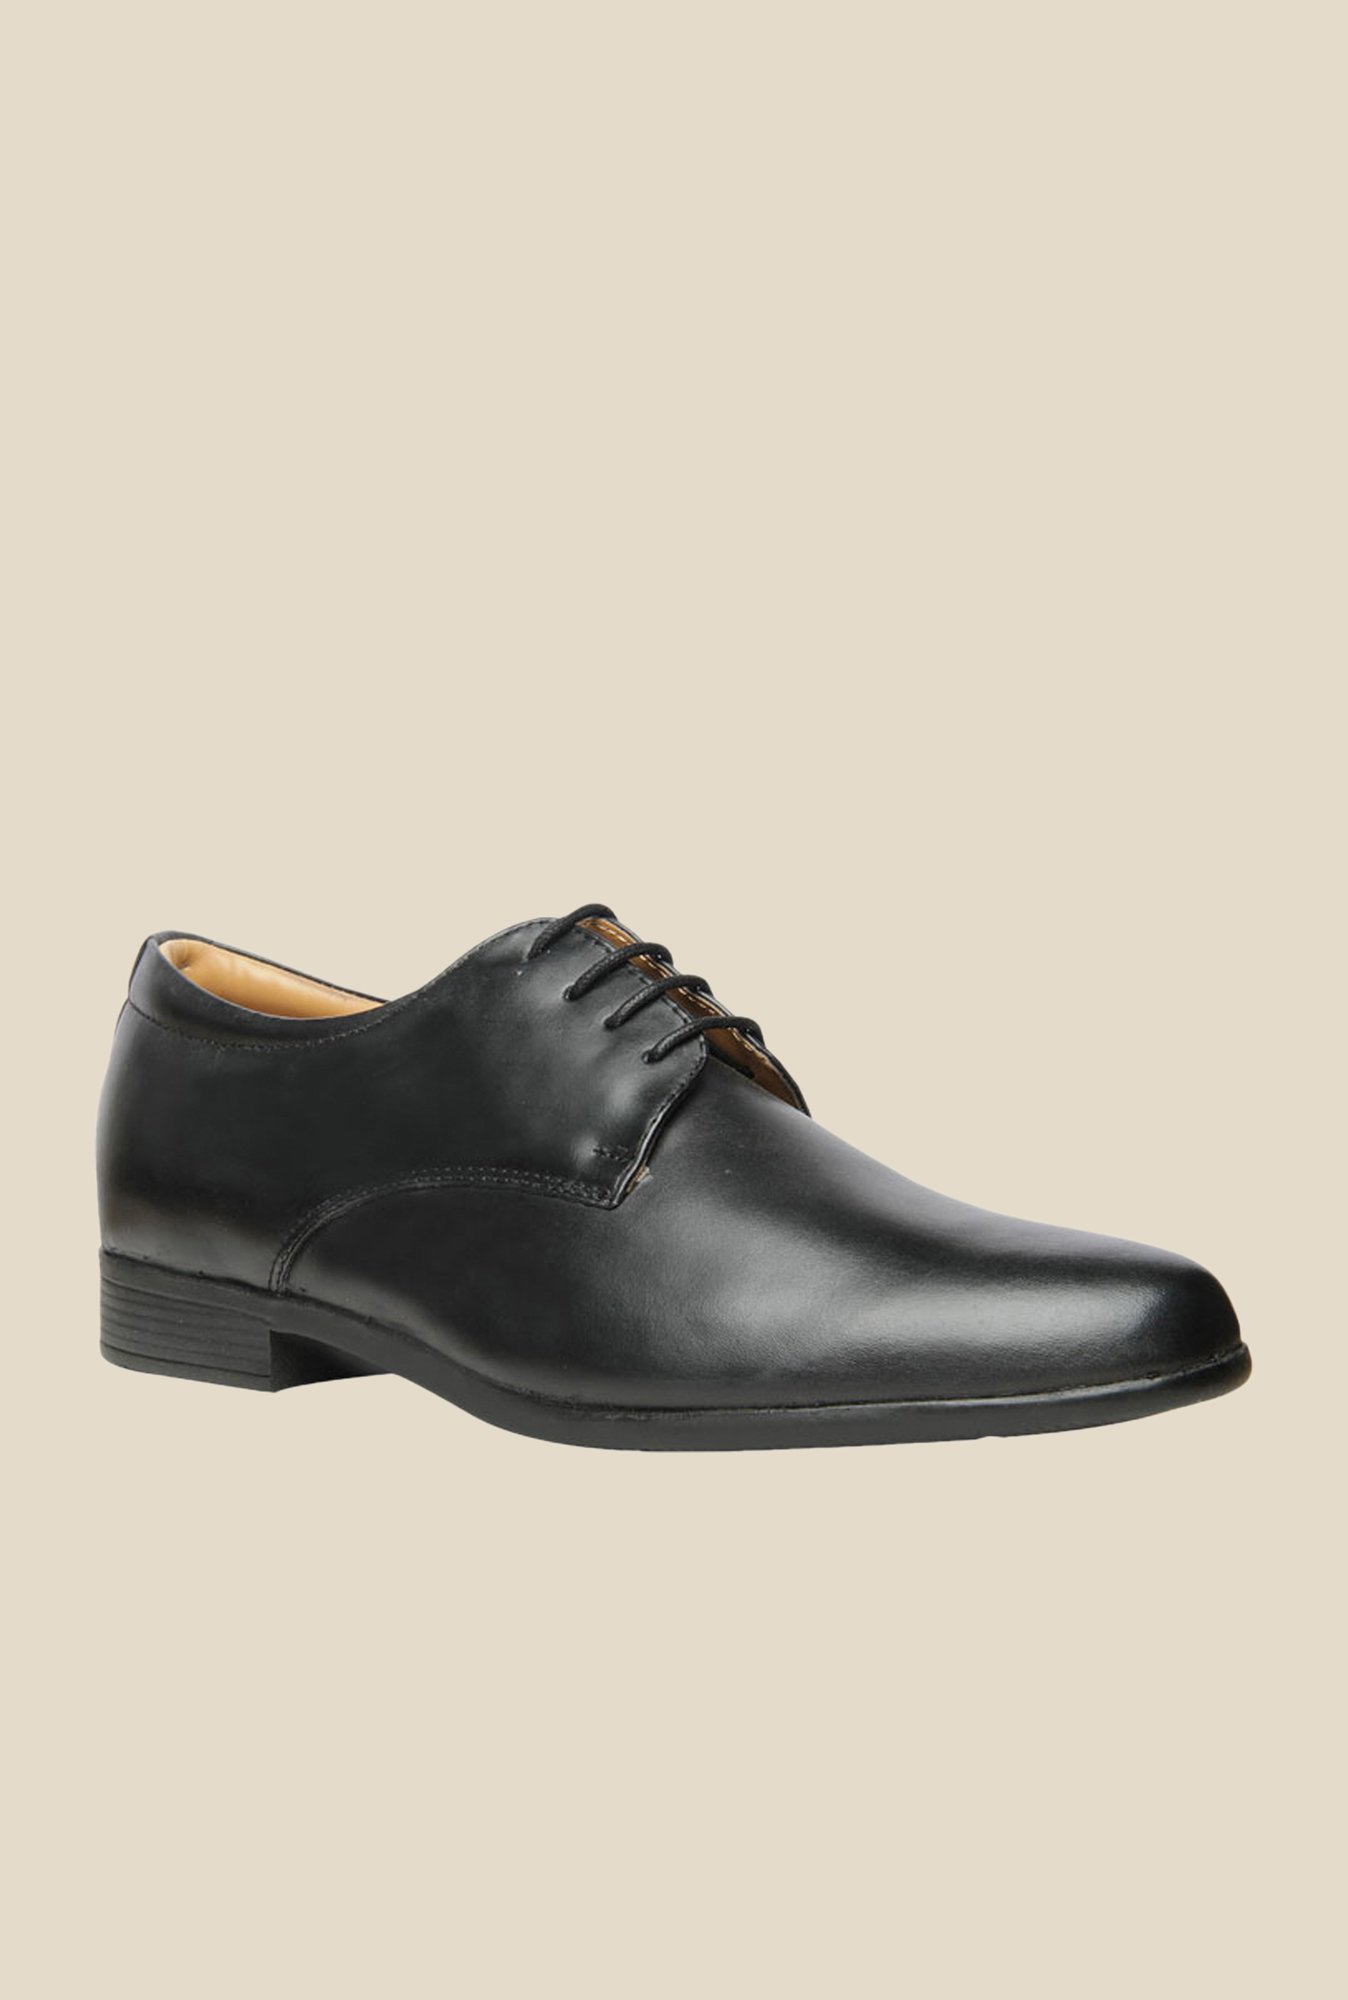 Bata Super Star Black Derby Shoes